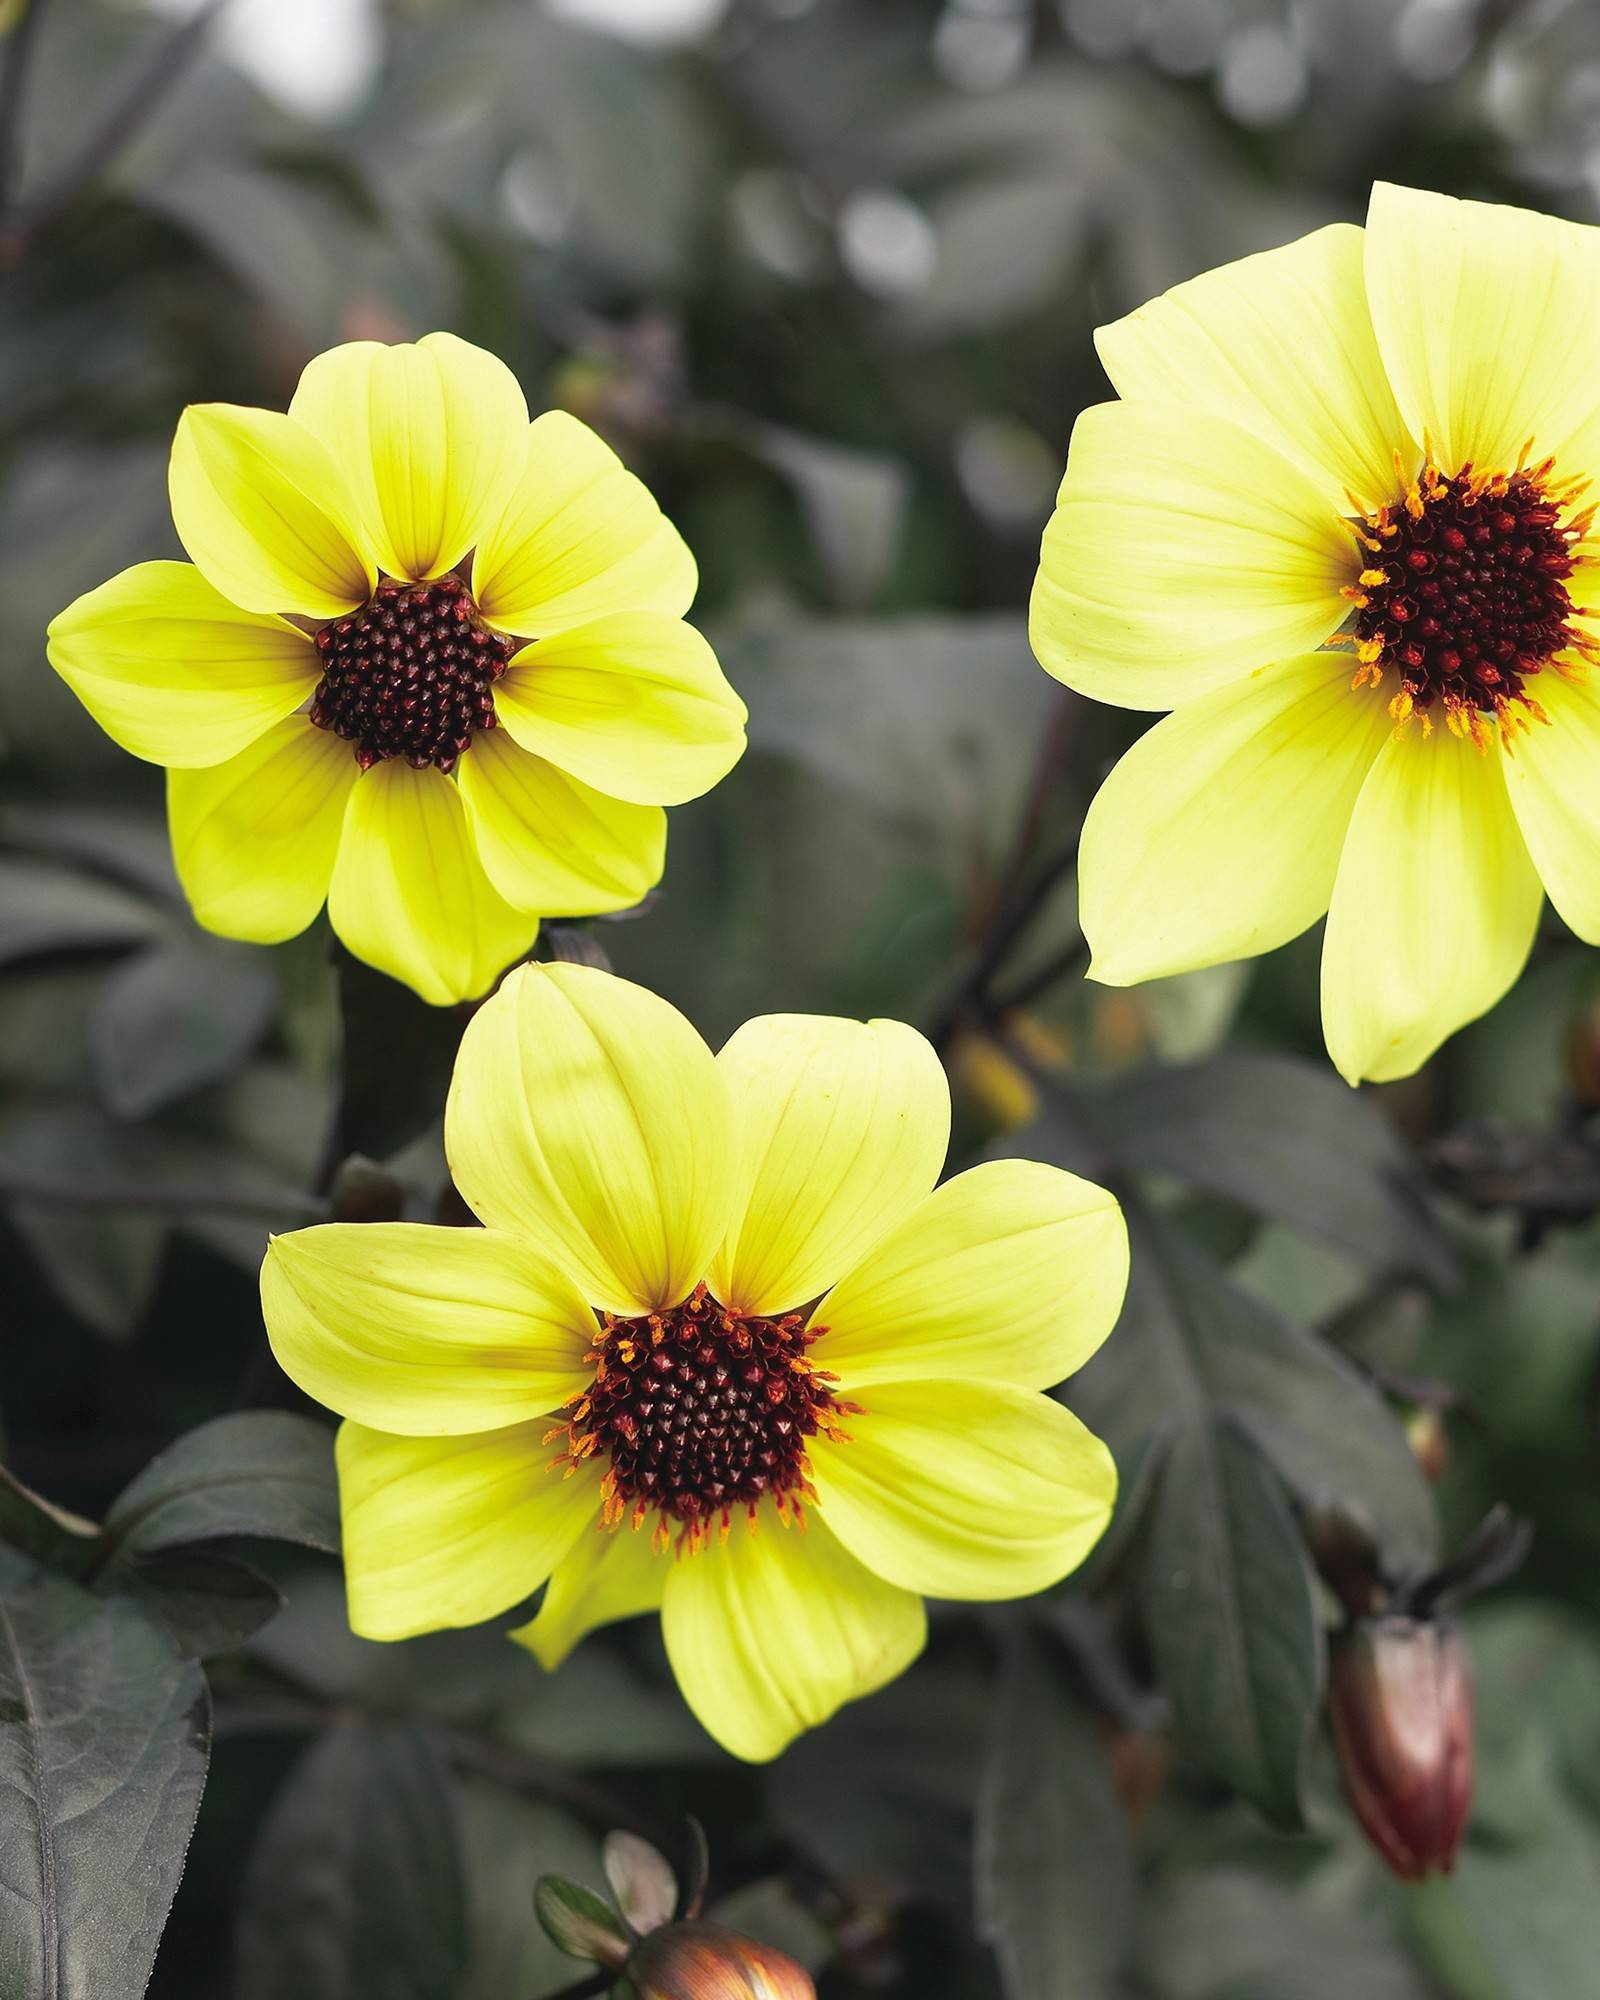 Mystic Illusion, a bright yellow dahlia with dark, almost black foliage, has helped make the dahlia popular again.